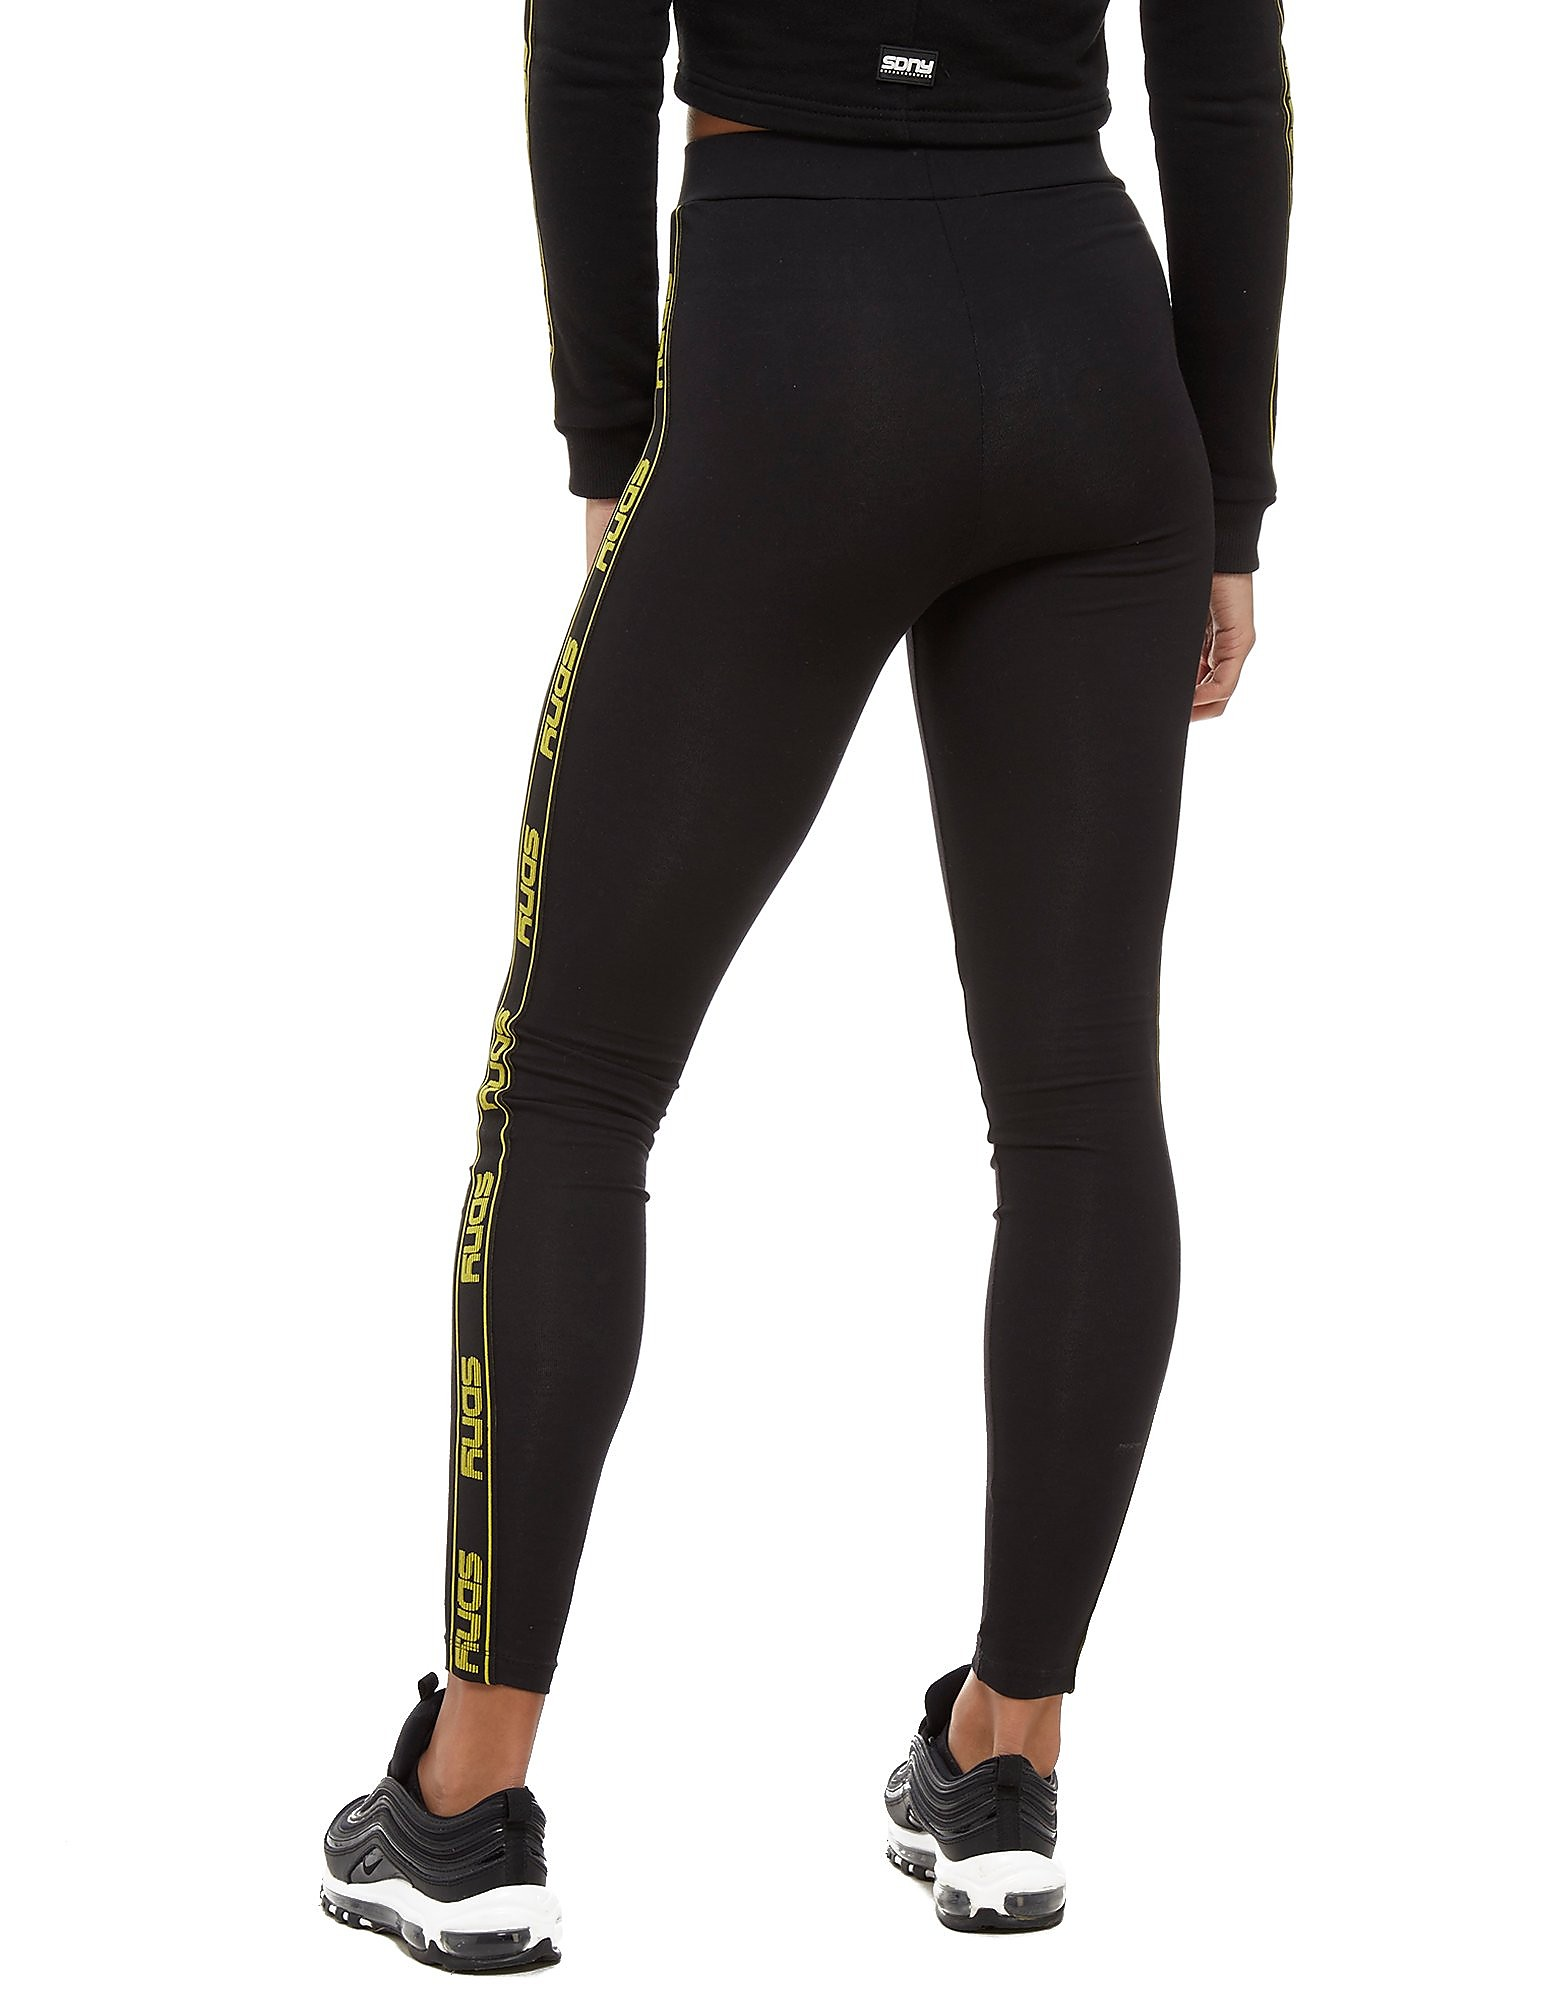 Supply & Demand Iconic Tape Leggings